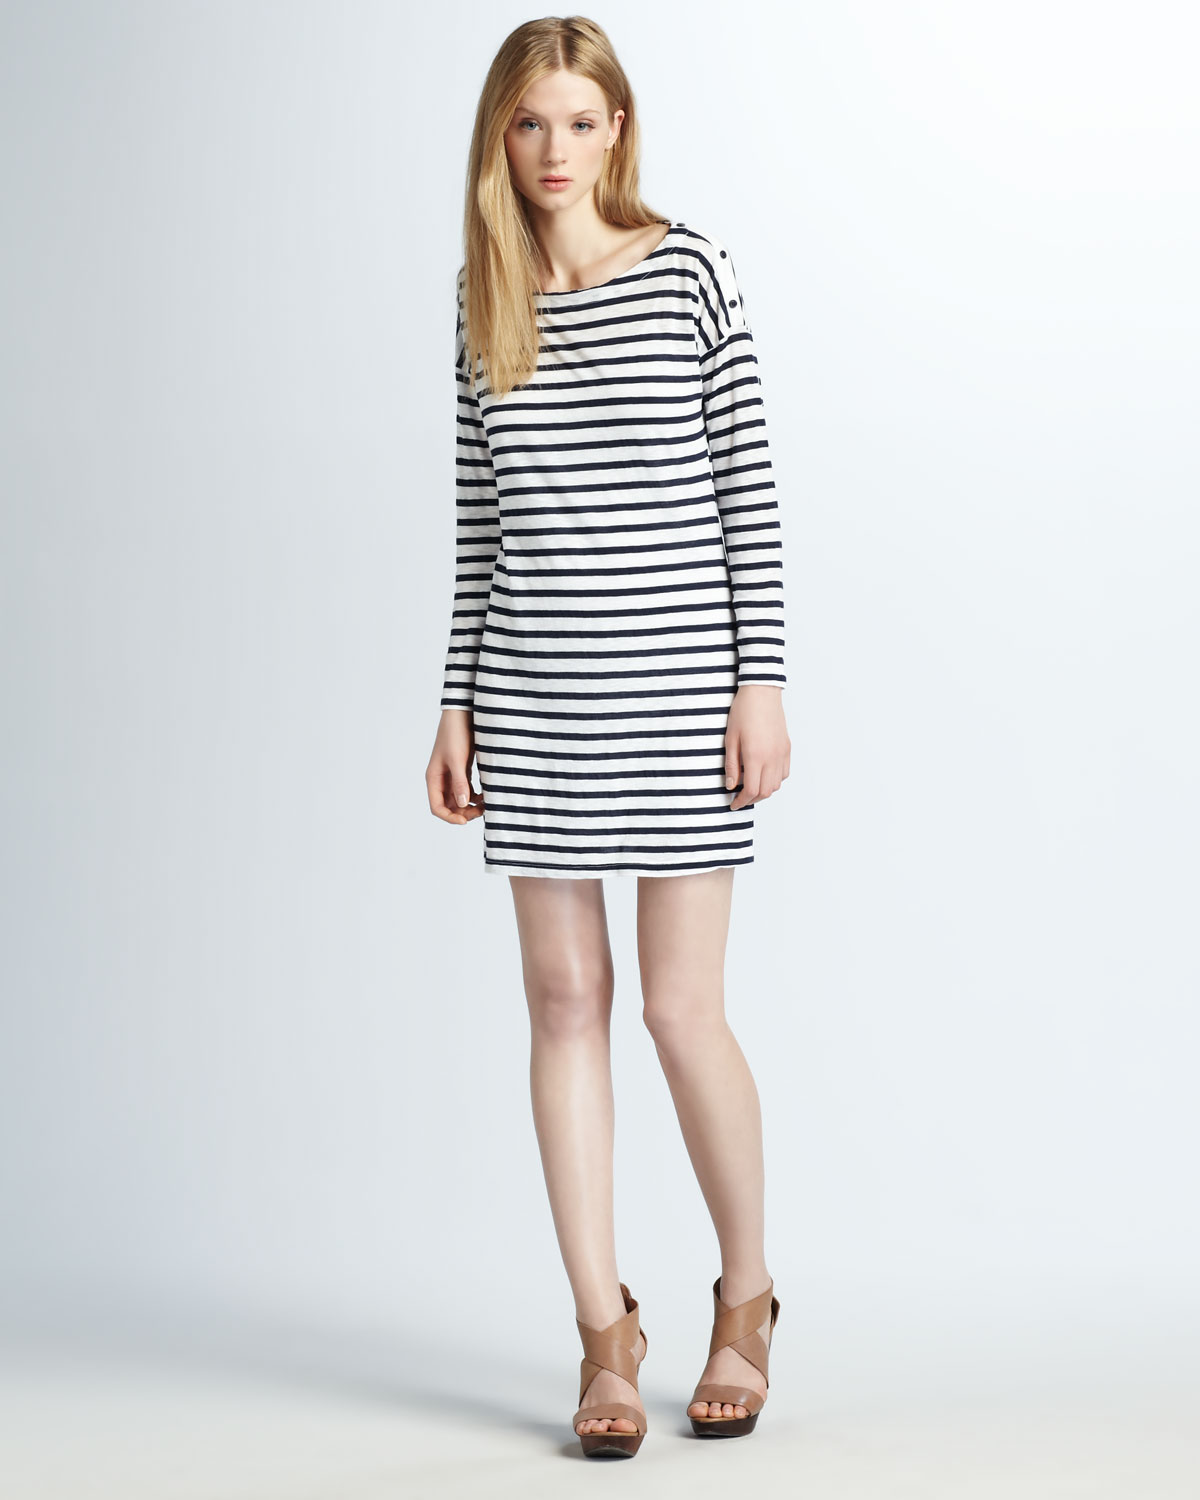 Lyst - Splendid Striped Knit Dress in White 76a91faaf5